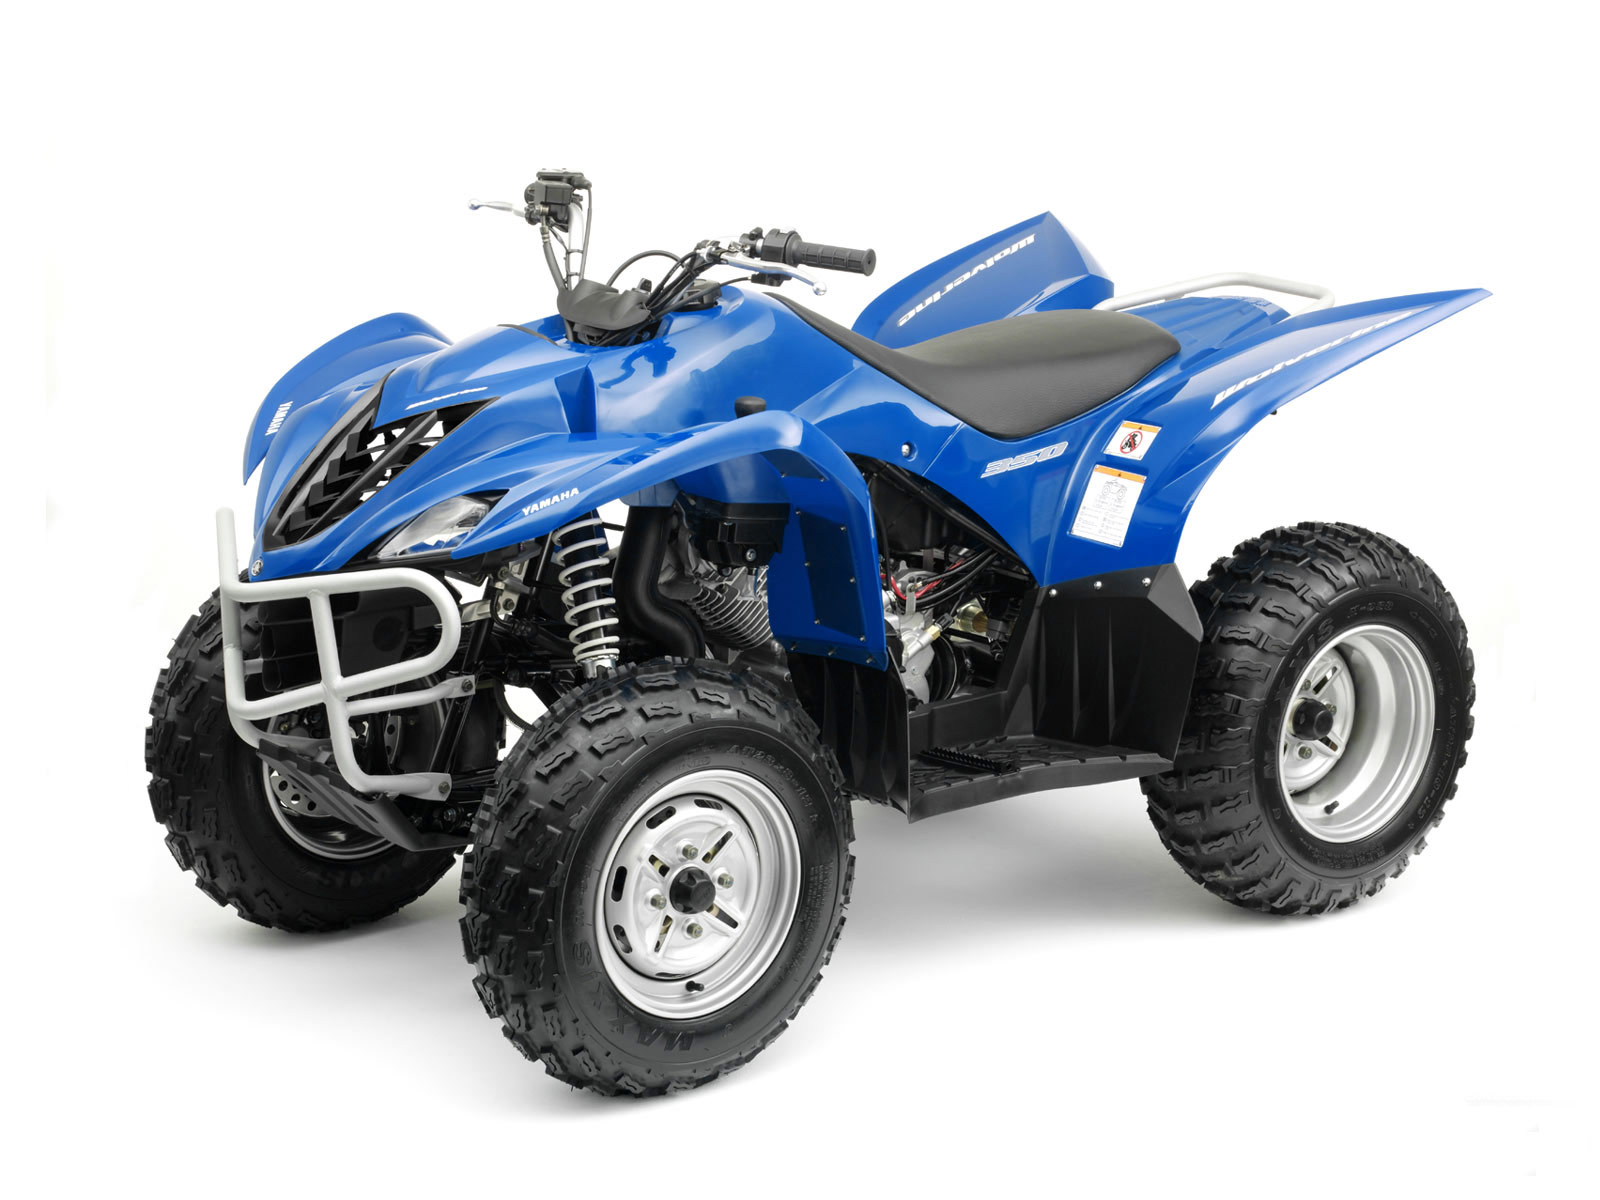 2008 YAMAHA ATV pictures Wolverine 350 accident lawyers info